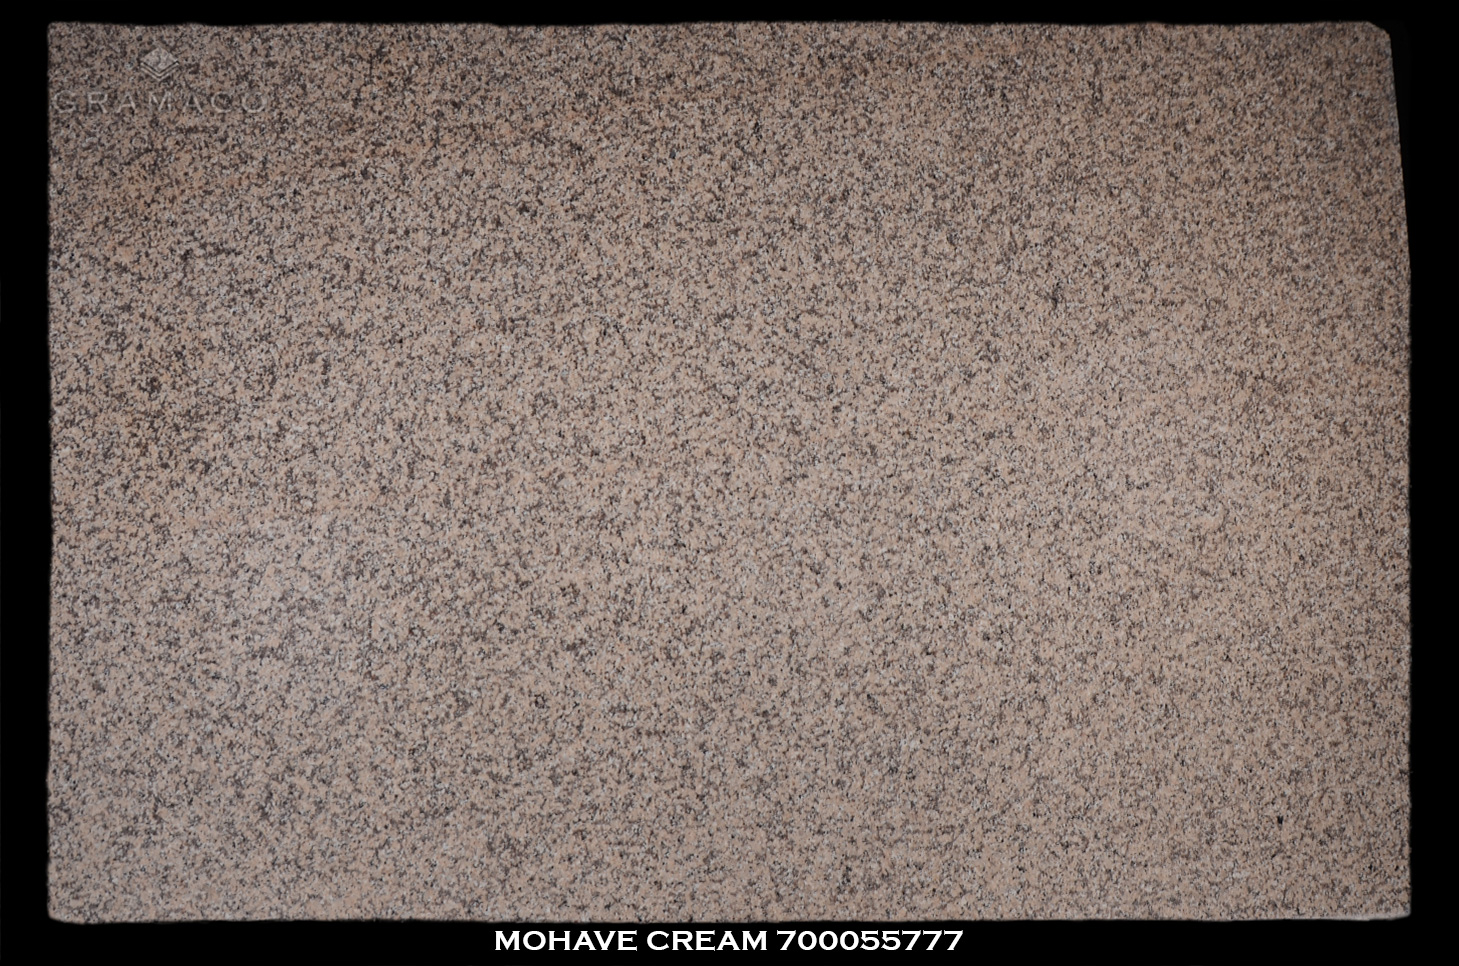 mohave_cream700055777-slab